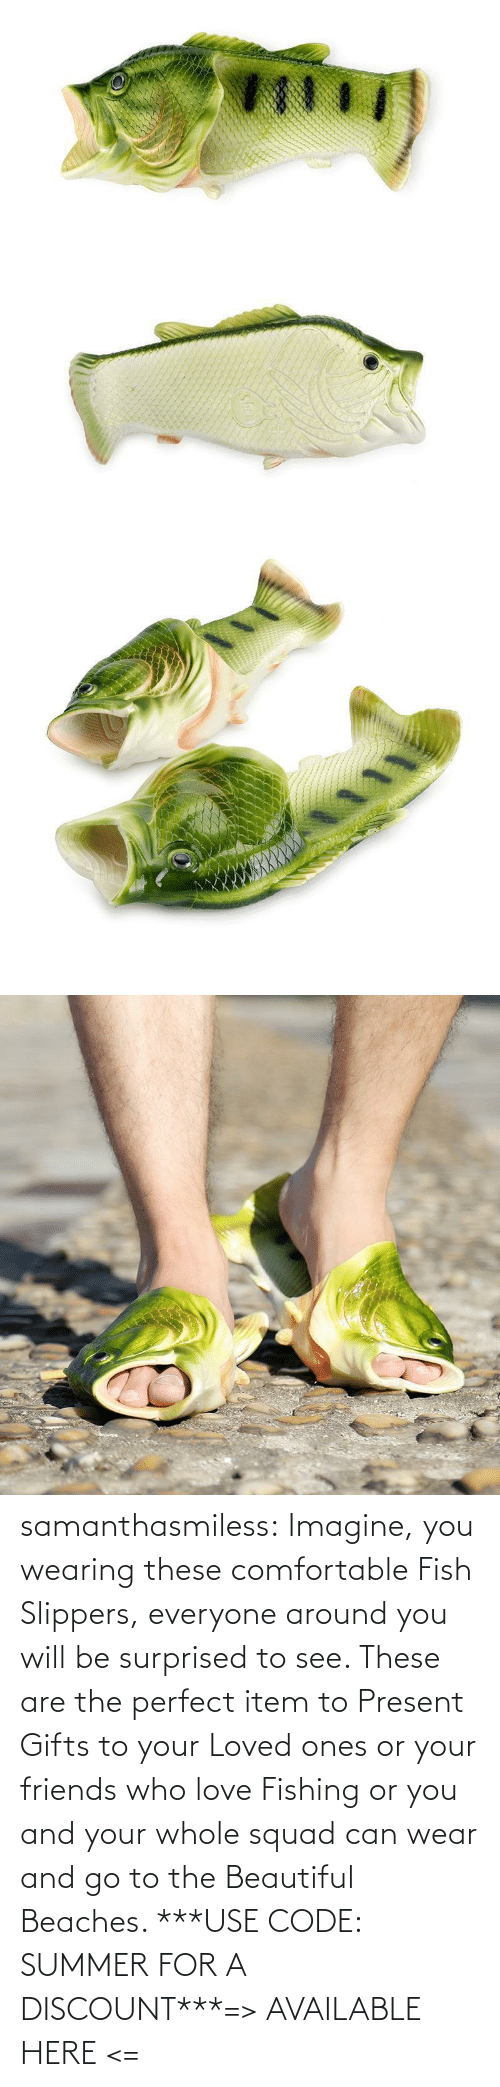 Squad: samanthasmiless:  Imagine, you wearing these comfortable Fish Slippers, everyone around you will be surprised to see. These are the perfect item to Present Gifts to your Loved ones or your friends who love Fishing or you and your whole squad can wear and go to the Beautiful Beaches. ***USE CODE: SUMMER FOR A DISCOUNT***=> AVAILABLE HERE <=